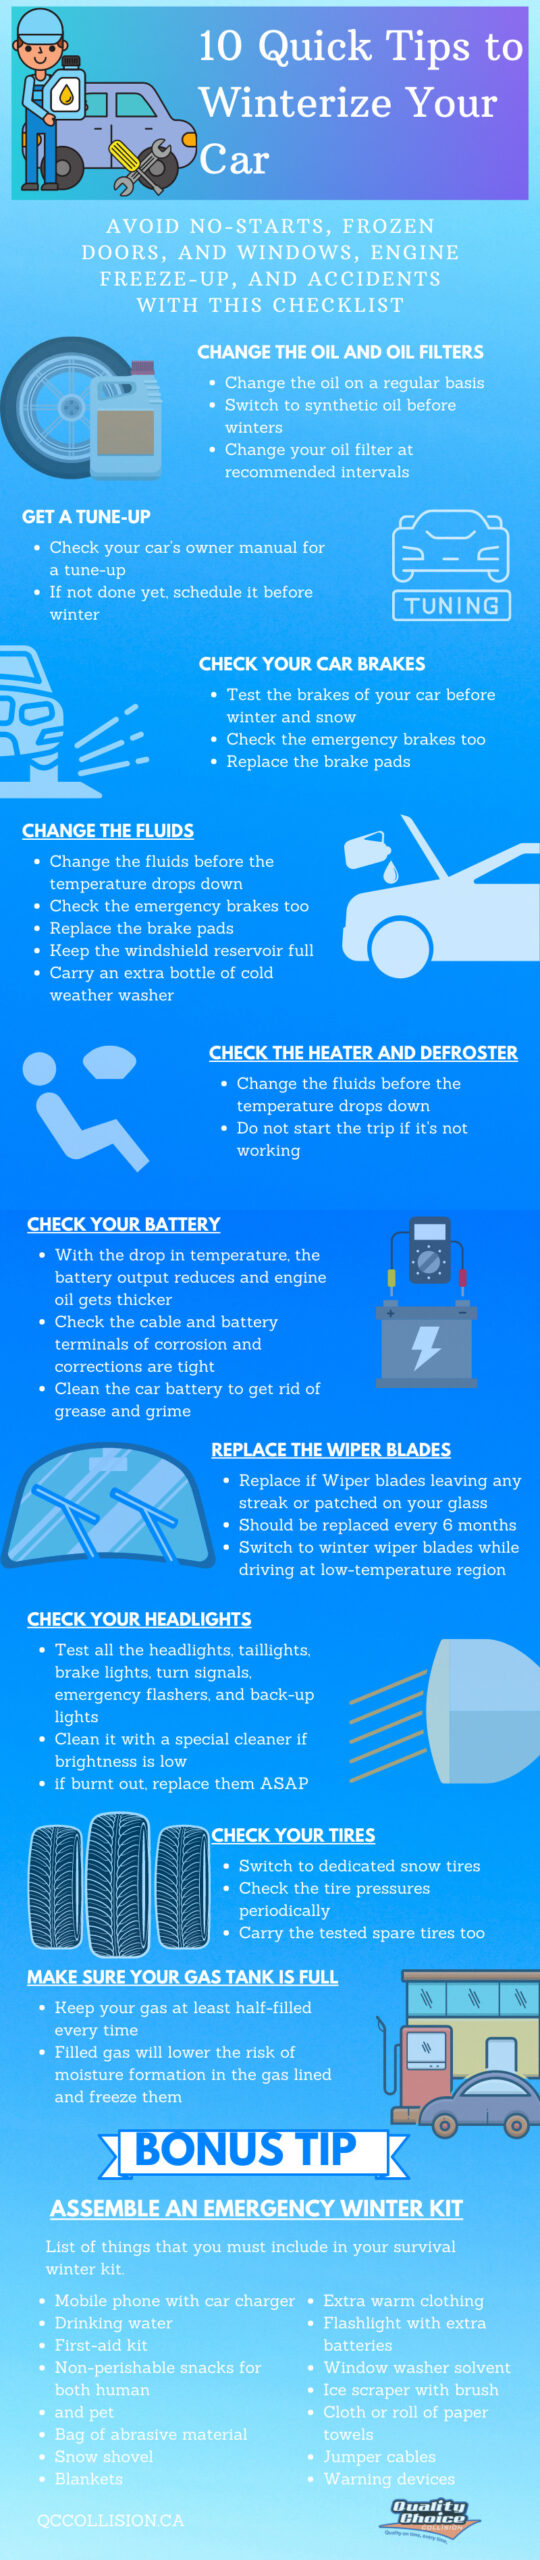 10 quick ways to get your car ready for winter